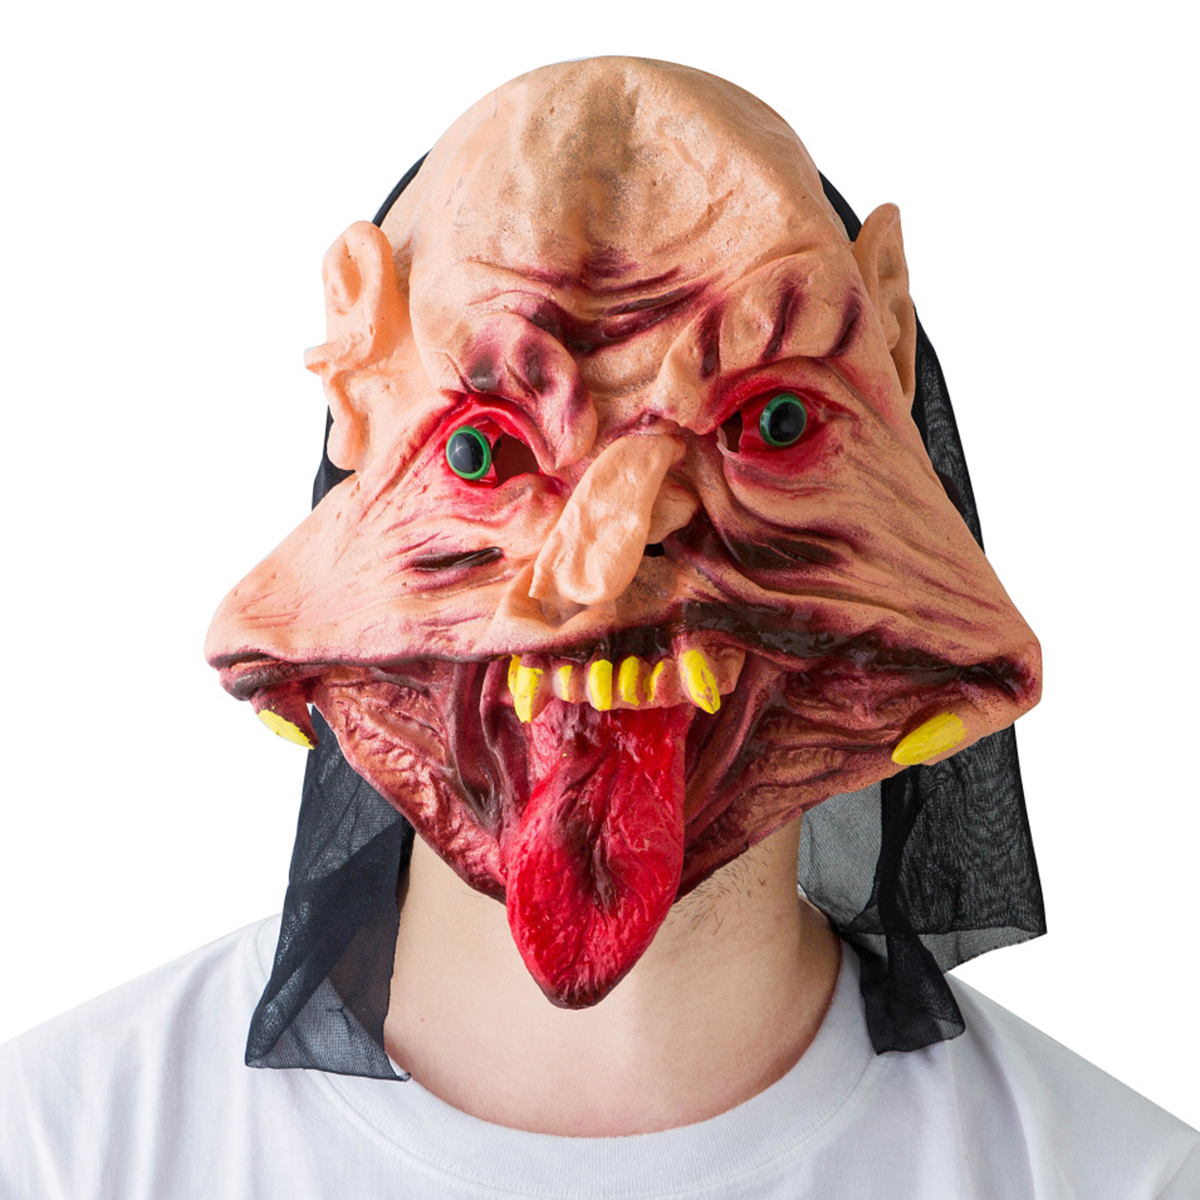 Halloween Cosplay Festival Party Supplies Scary Mask Horrifying Mask Mask With For Red Tongue Distorted Mouth Creepy Mask